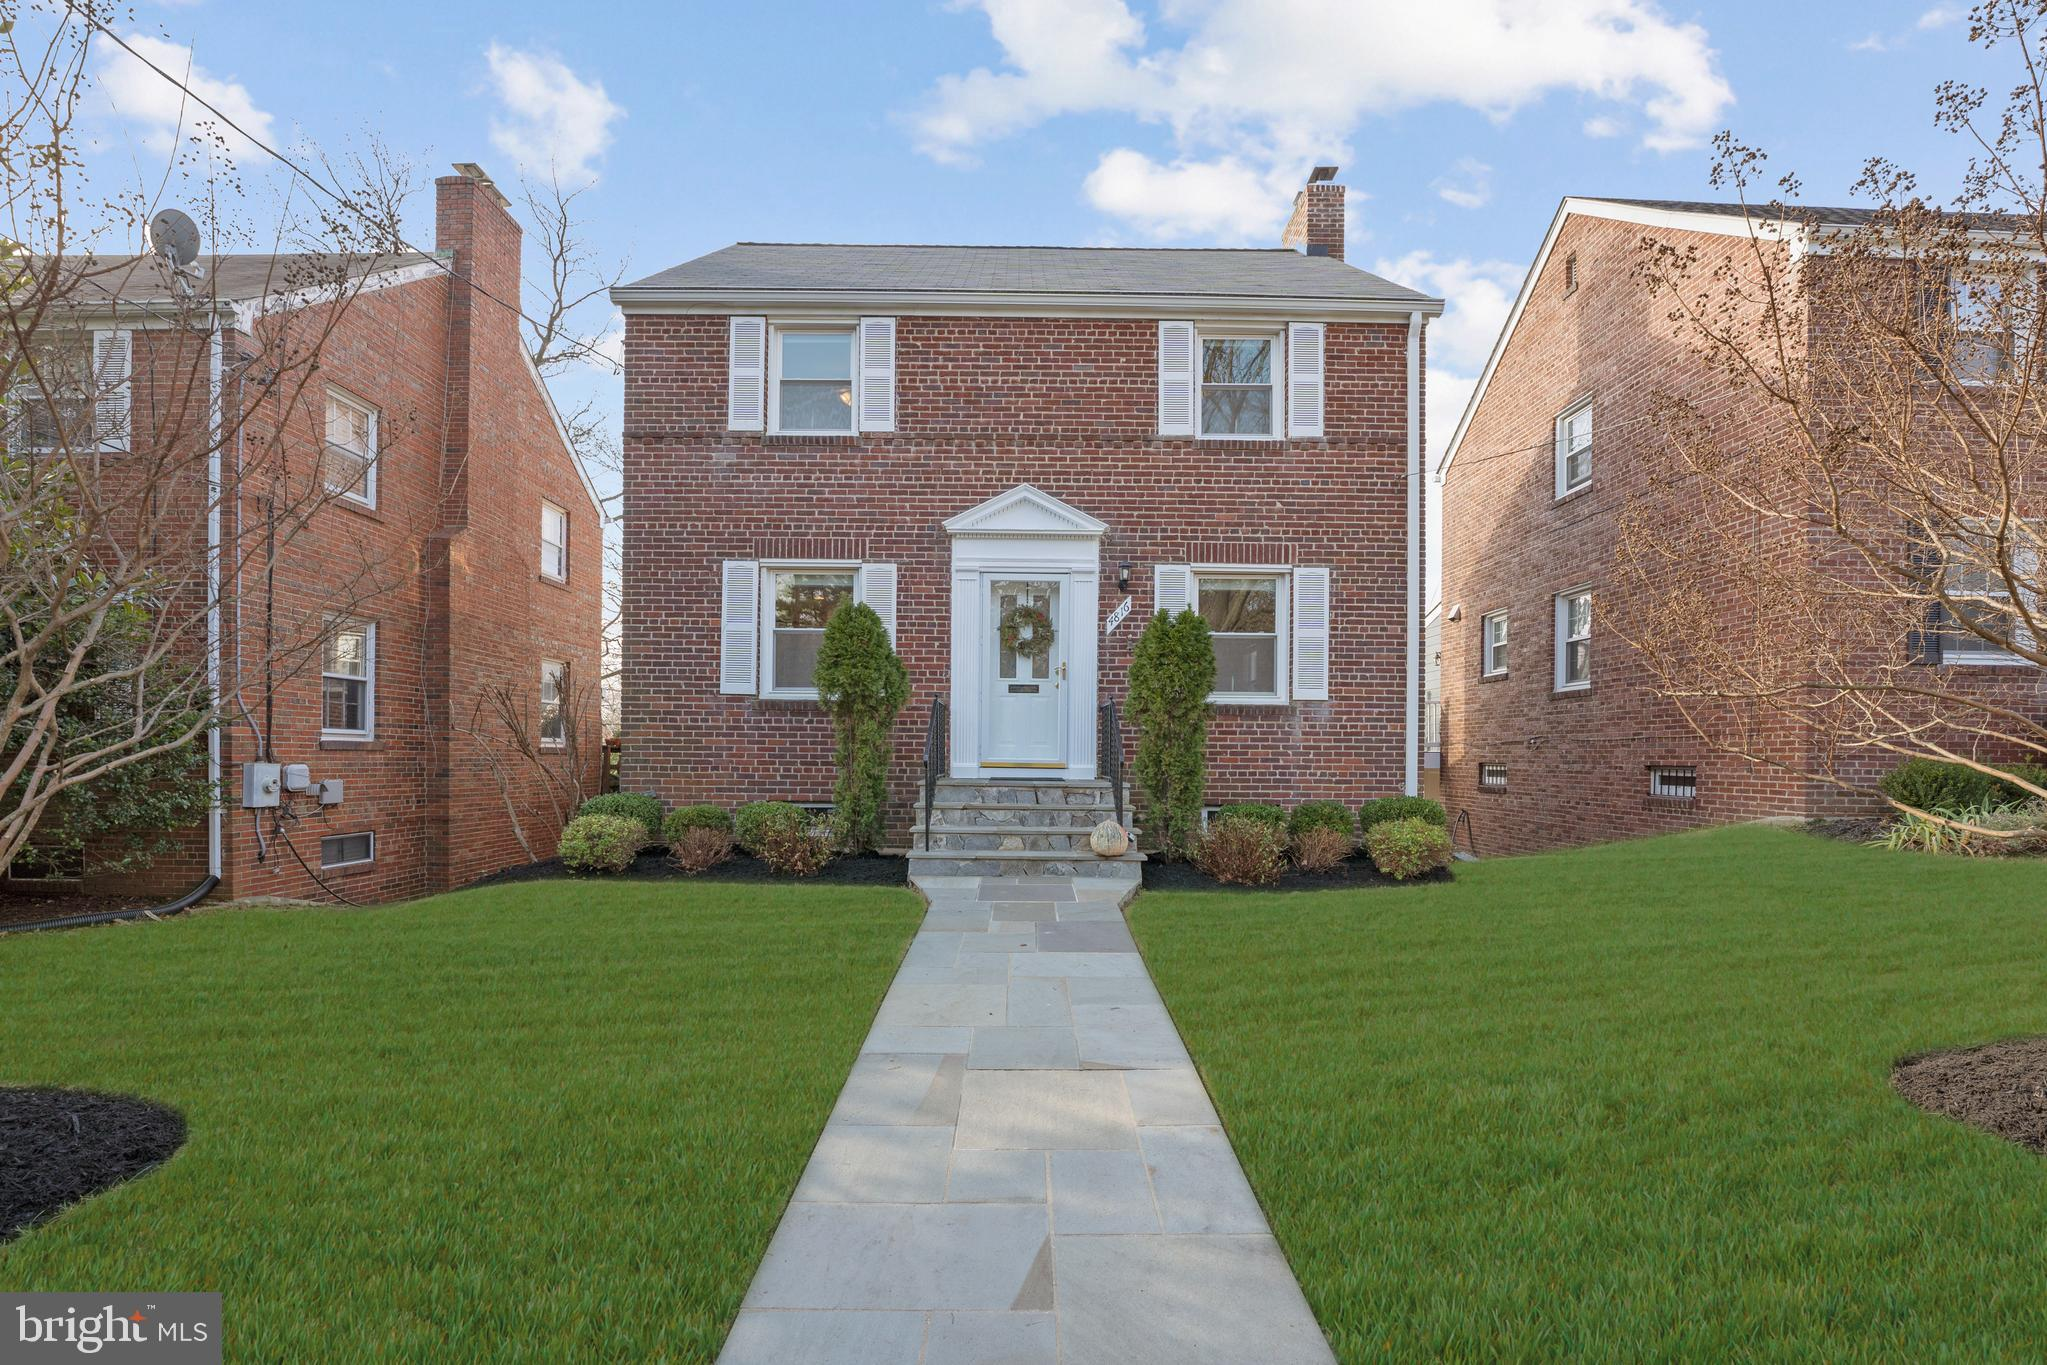 Beautiful Michigan Park 3-bdrm, 2 full/2half bath home. Highlights include cook's kitchen, working fireplace, bright sun room, en-suite master, hardwood floors, walk-out basement, stone patio and off-street parking. Central air & heat. Close to Fort Totten metro & Brookland amenities.